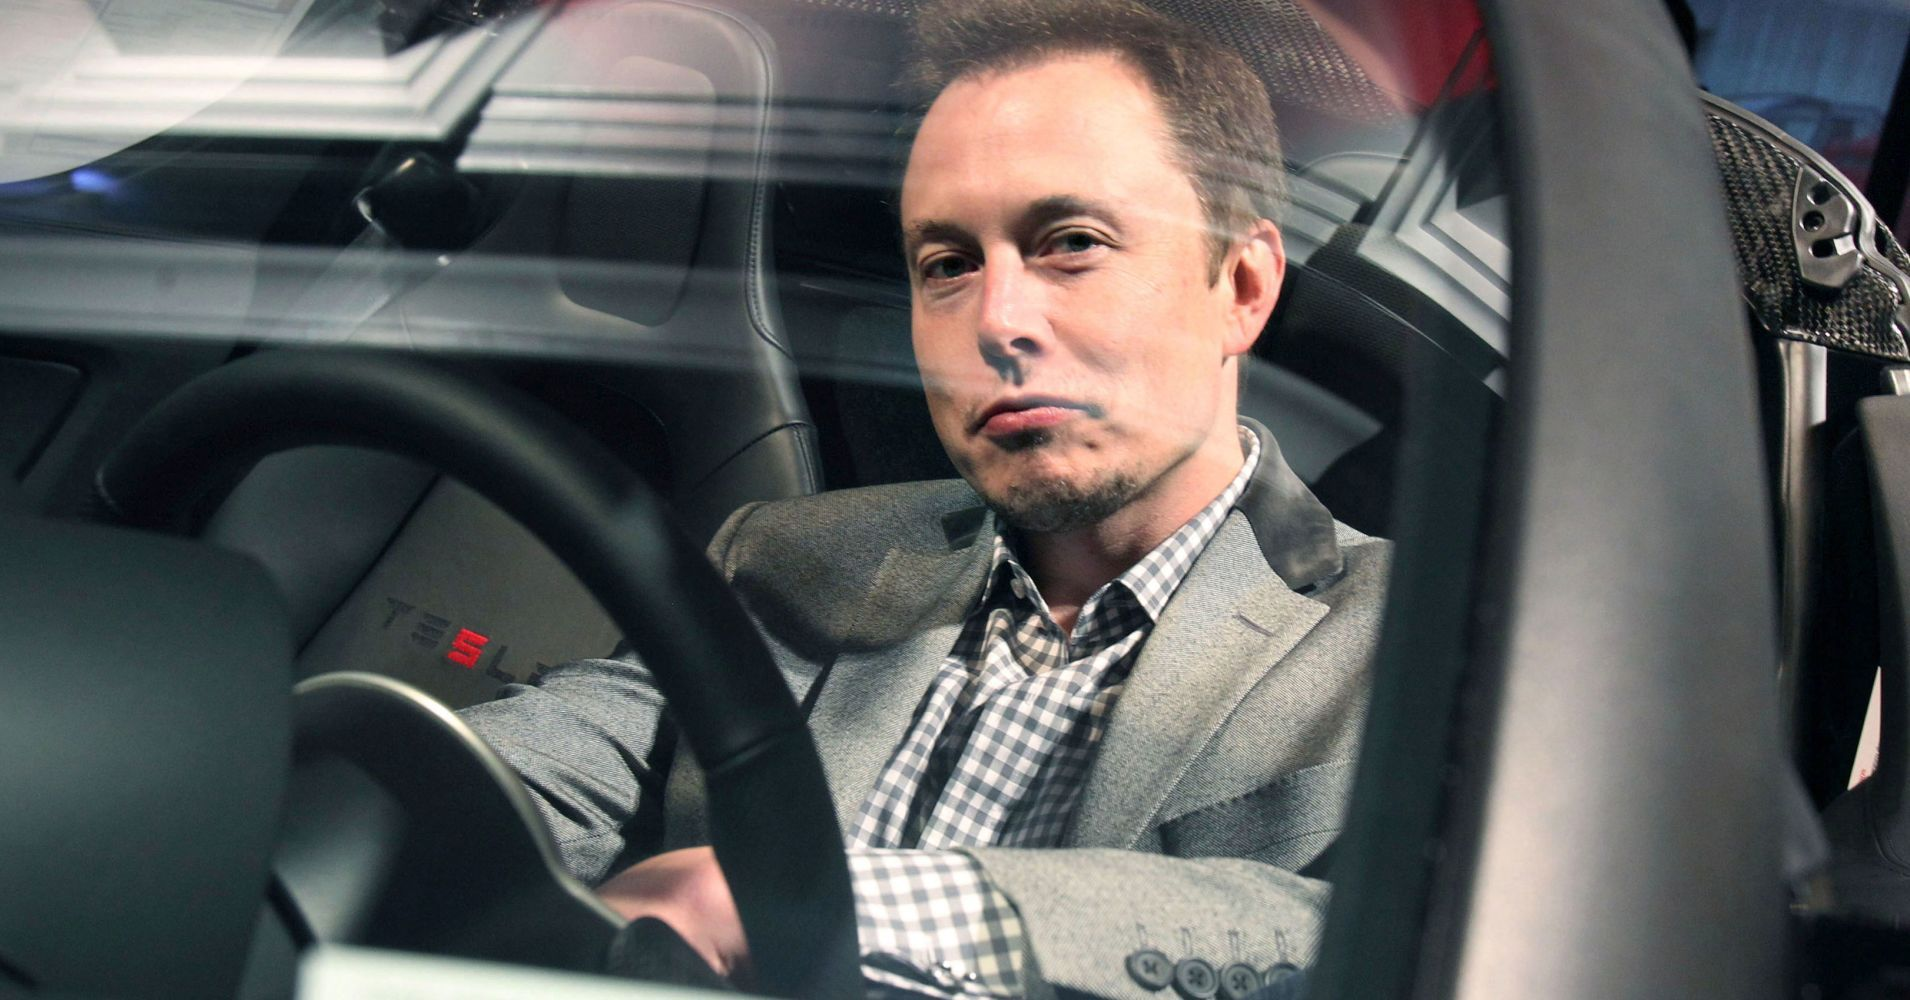 Elon Musk's extreme micromanagement has wasted time and